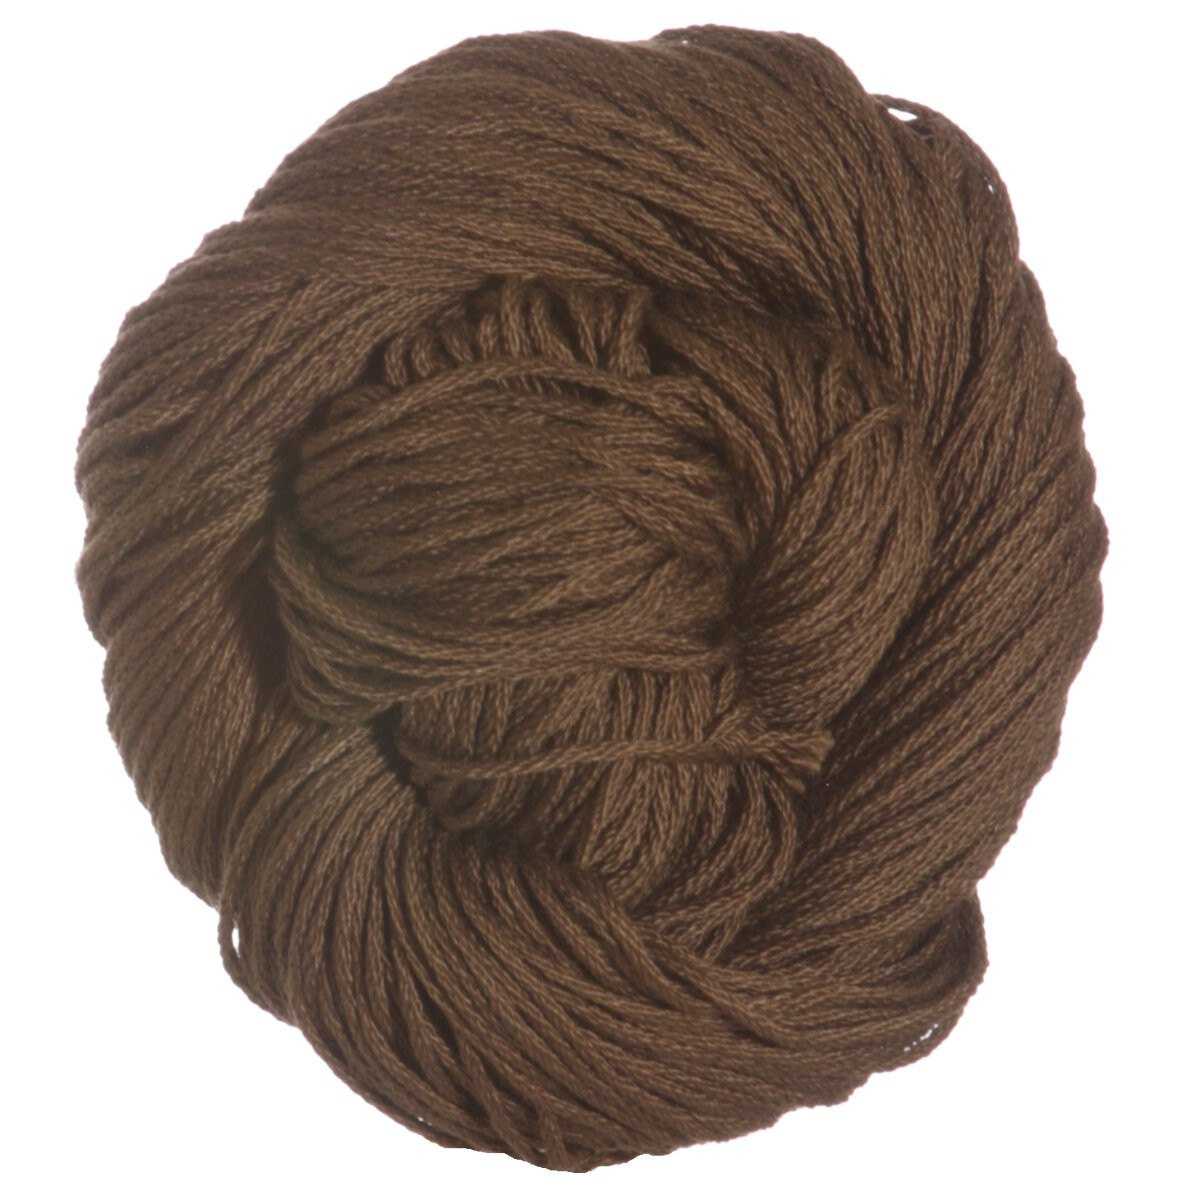 Tahki Cotton Classic Yarn 3328 Chocolate Discontinued